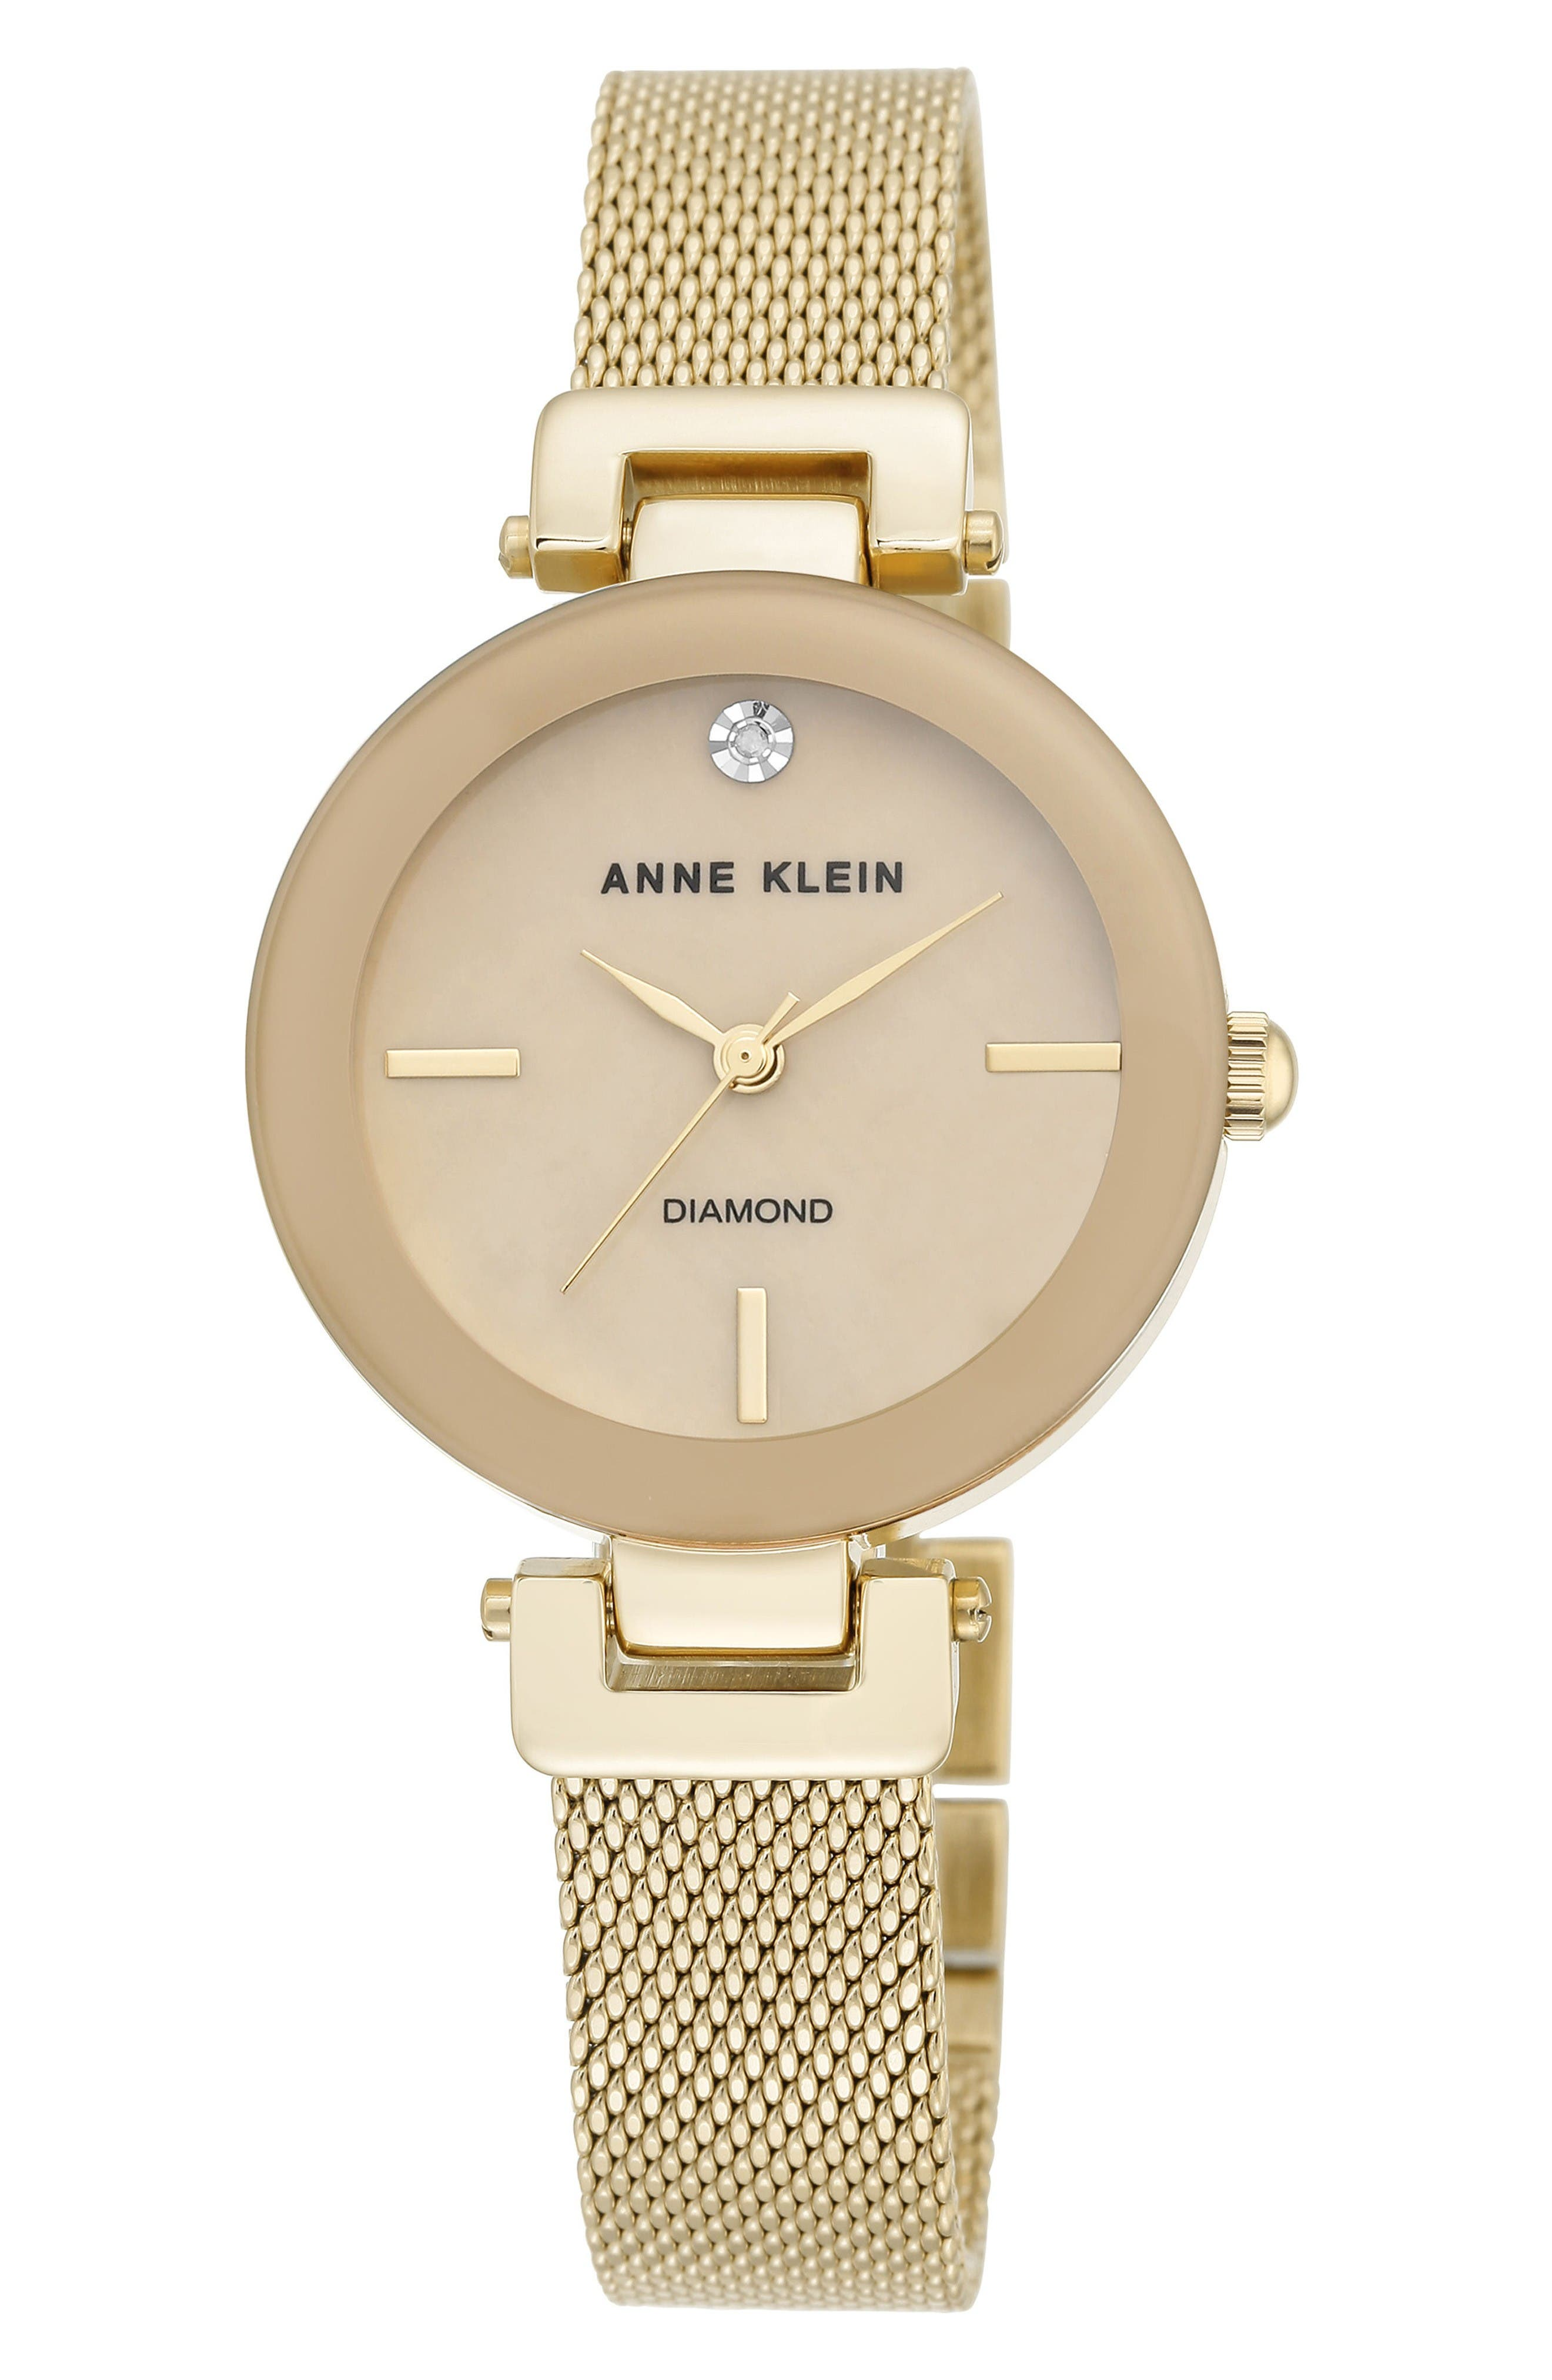 ANNE KLEIN Mesh Strap Watch, 30mm